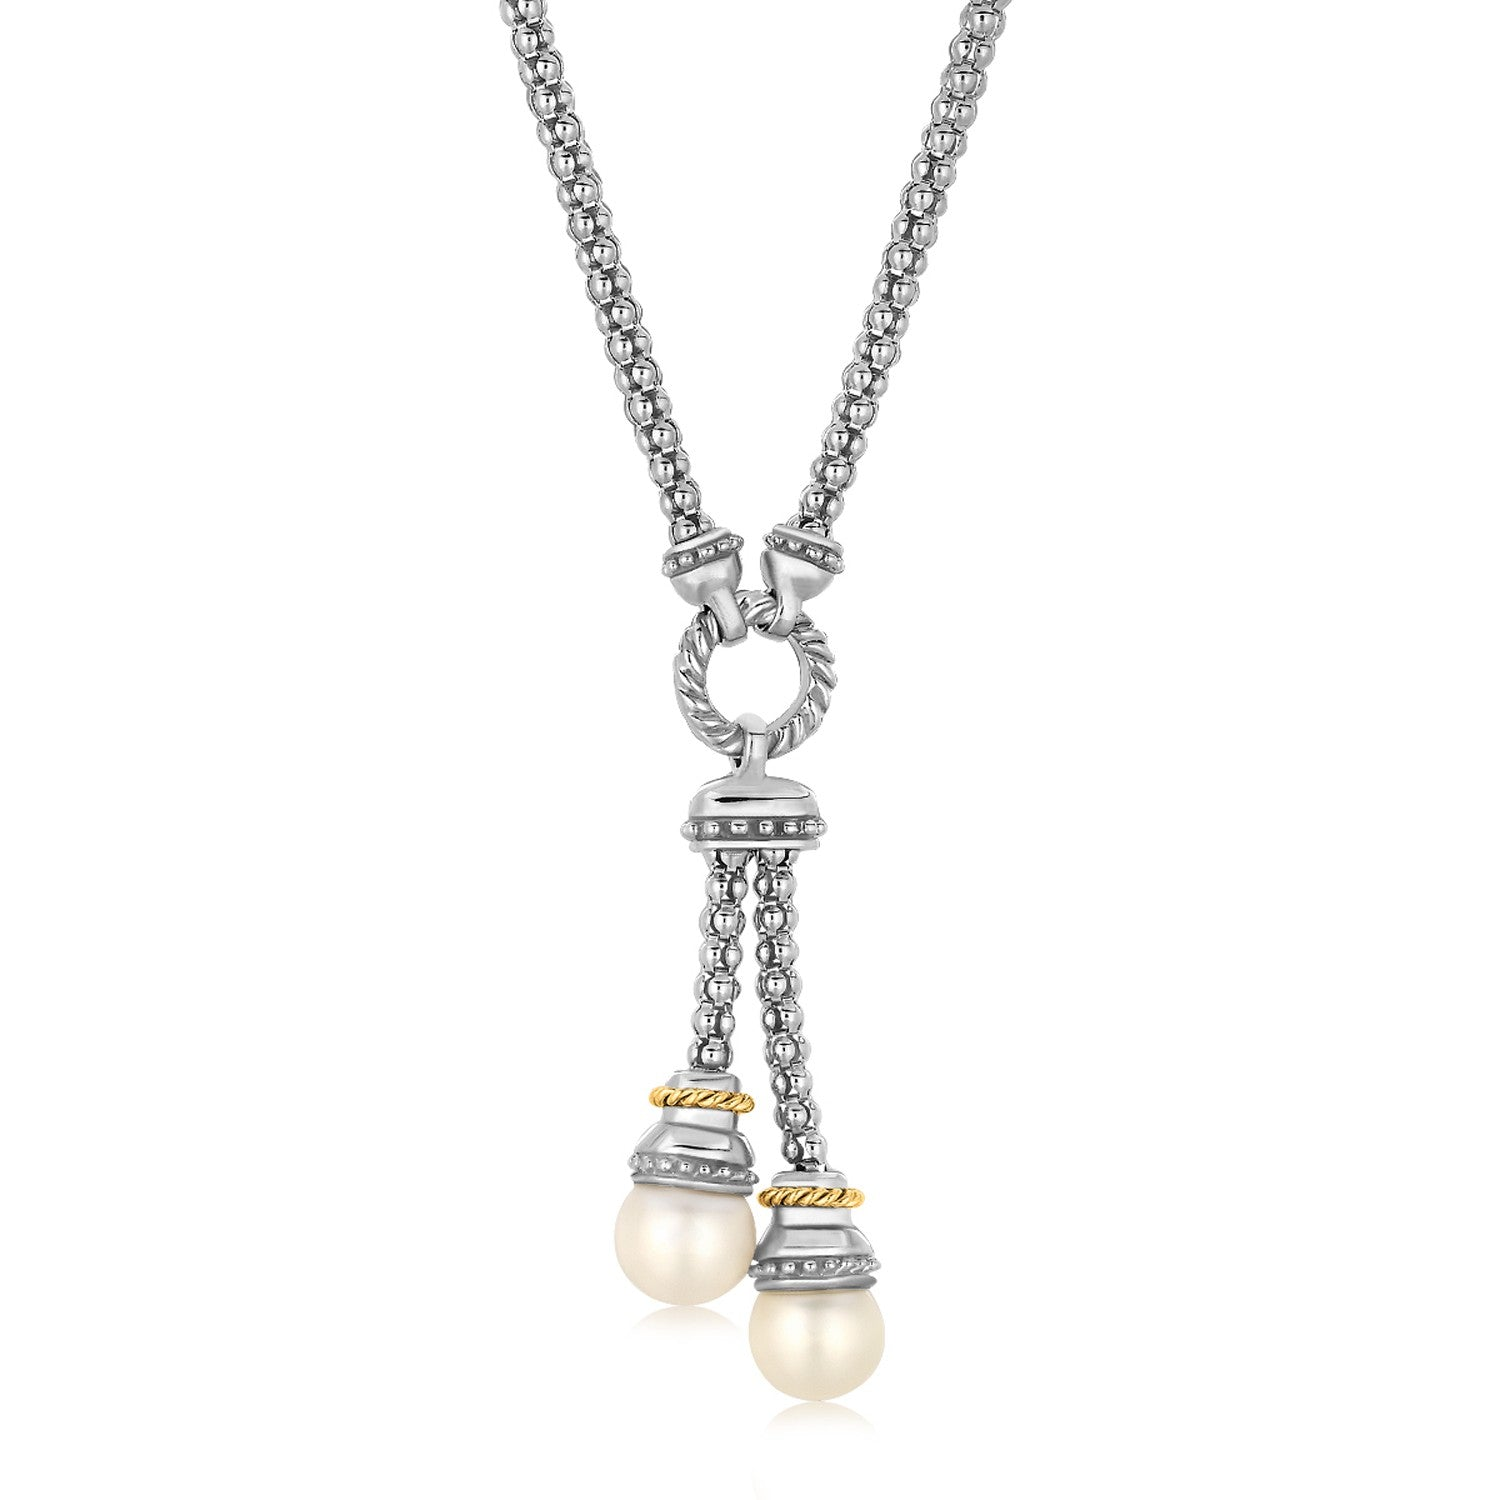 18k Yellow Gold and Sterling Silver Popcorn Style Necklace with Pearl Accents